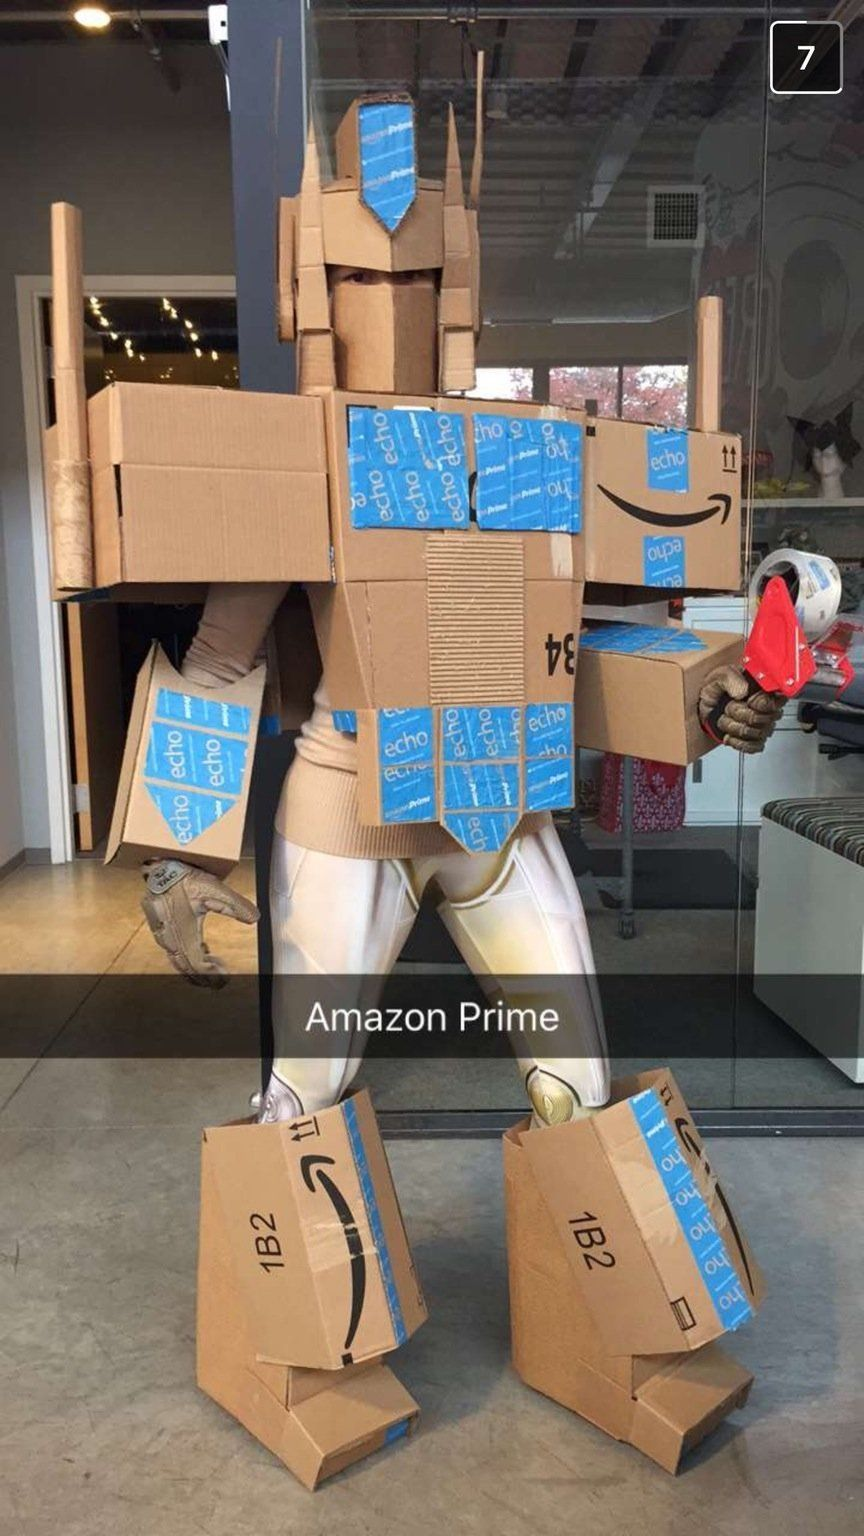 This Woman's Amazon Prime Costume Just Won